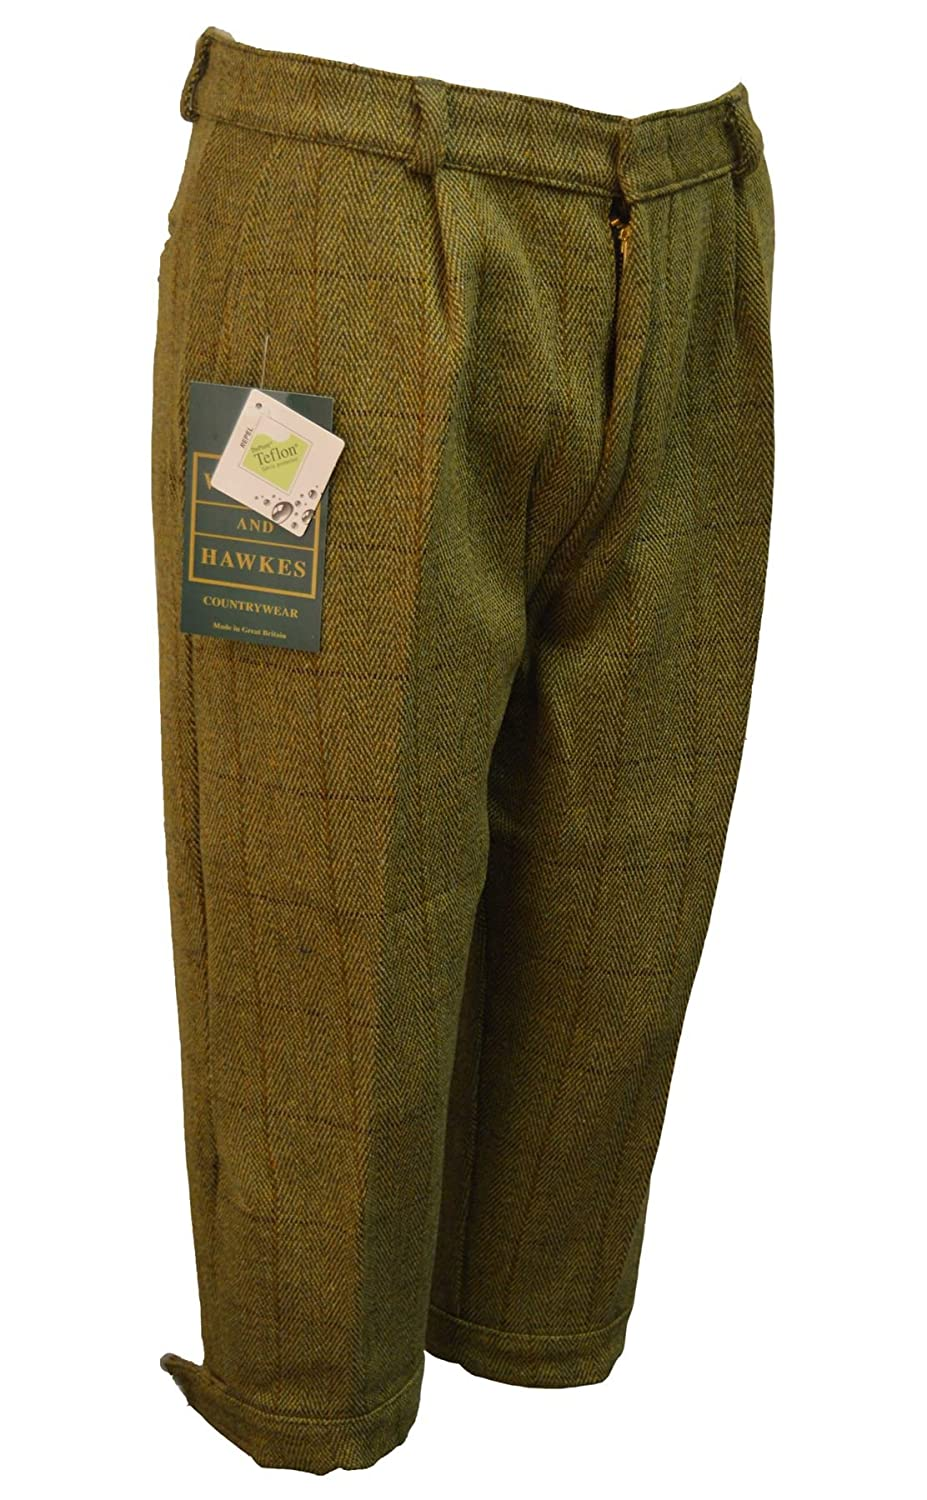 1920s Skirts, Gatsby Skirts, Vintage Pleated Skirts Walker & Hawkes - Mens Derby Tweed Shooting Plus Fours LONG Breeks Trousers - Light Sage - 32-42 $76.99 AT vintagedancer.com